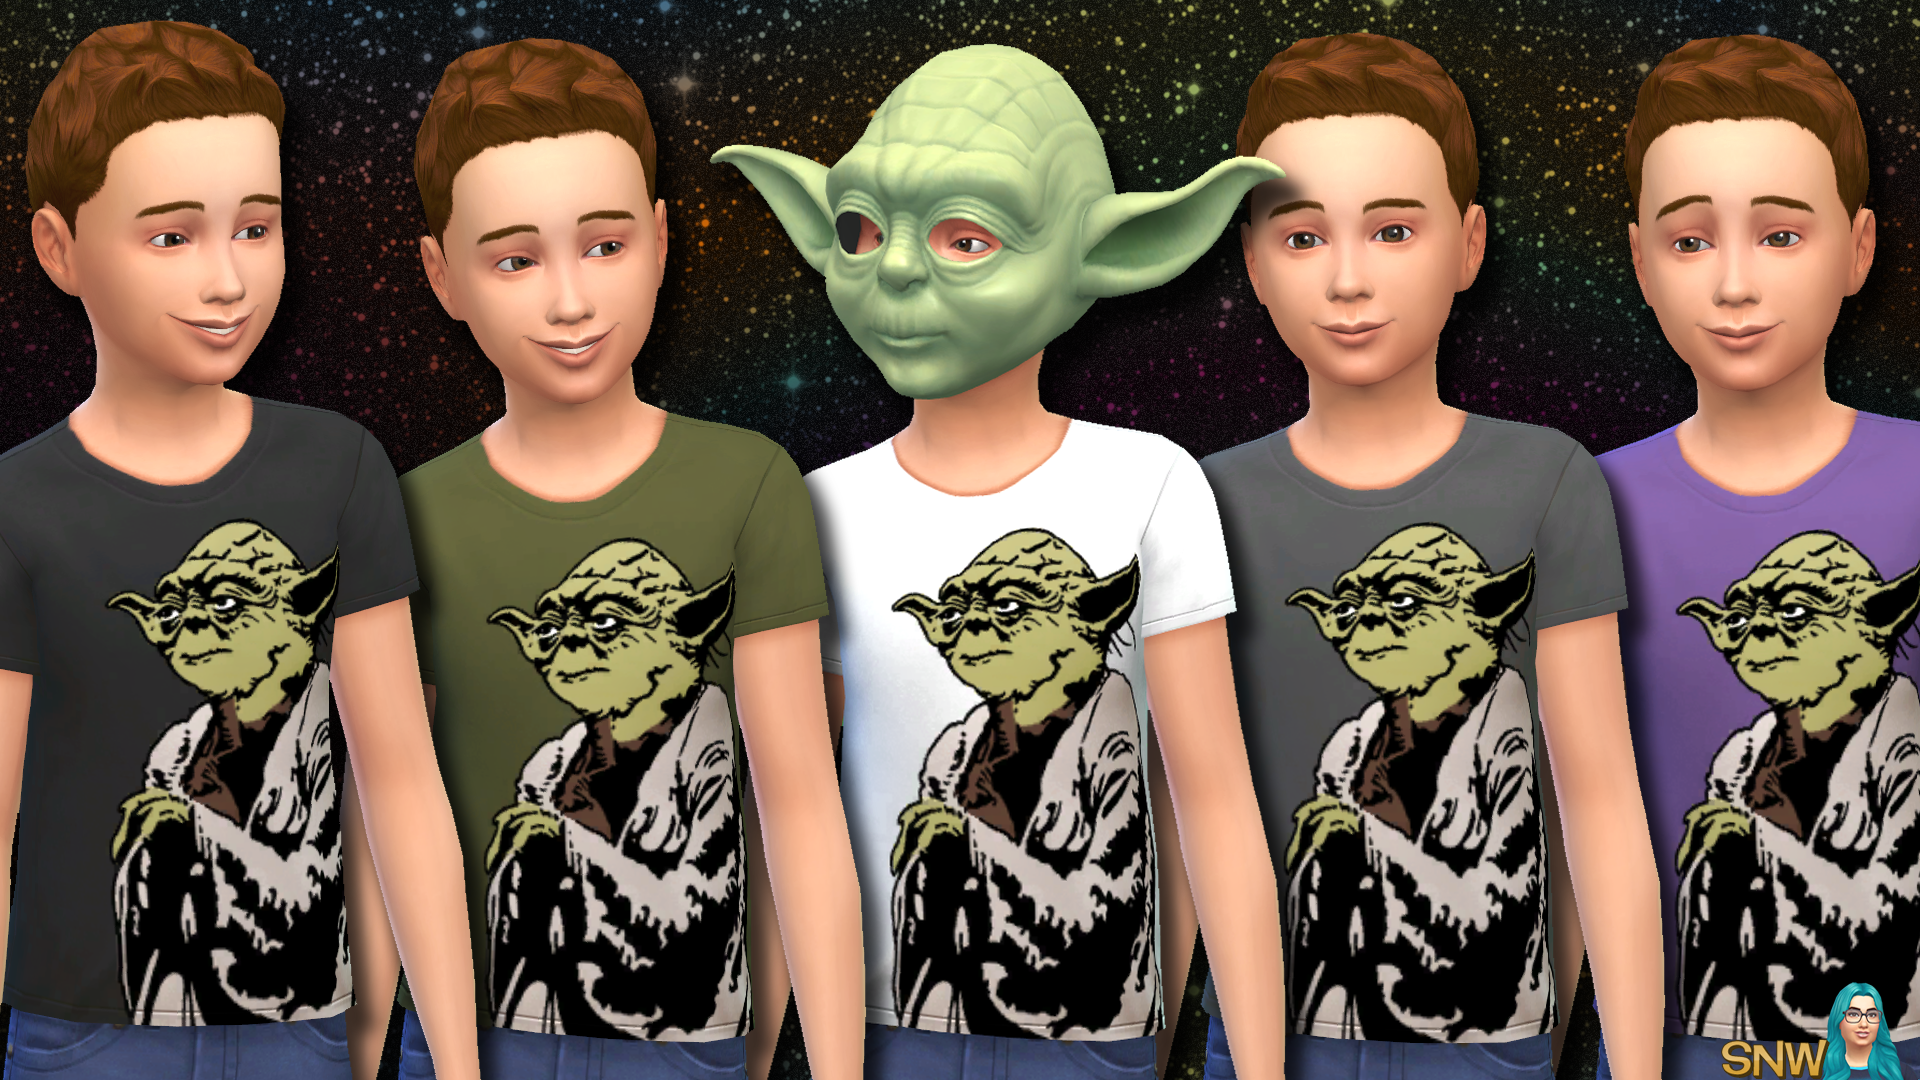 Star Wars Yoda Shirts for Kids